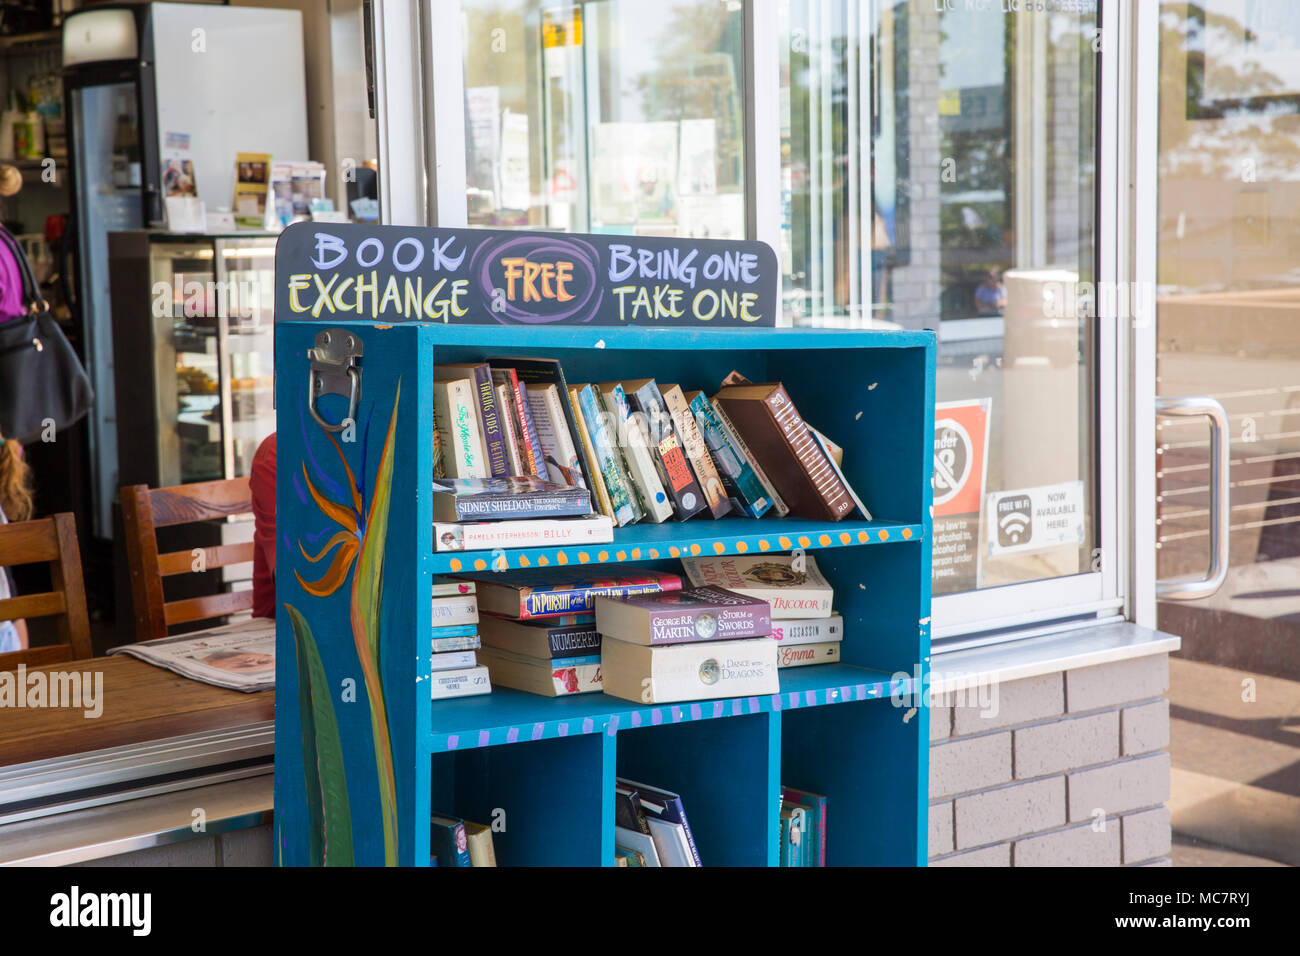 Book exchange bookshelves in Vincentia, Australia, bring a book and take a book - Stock Image